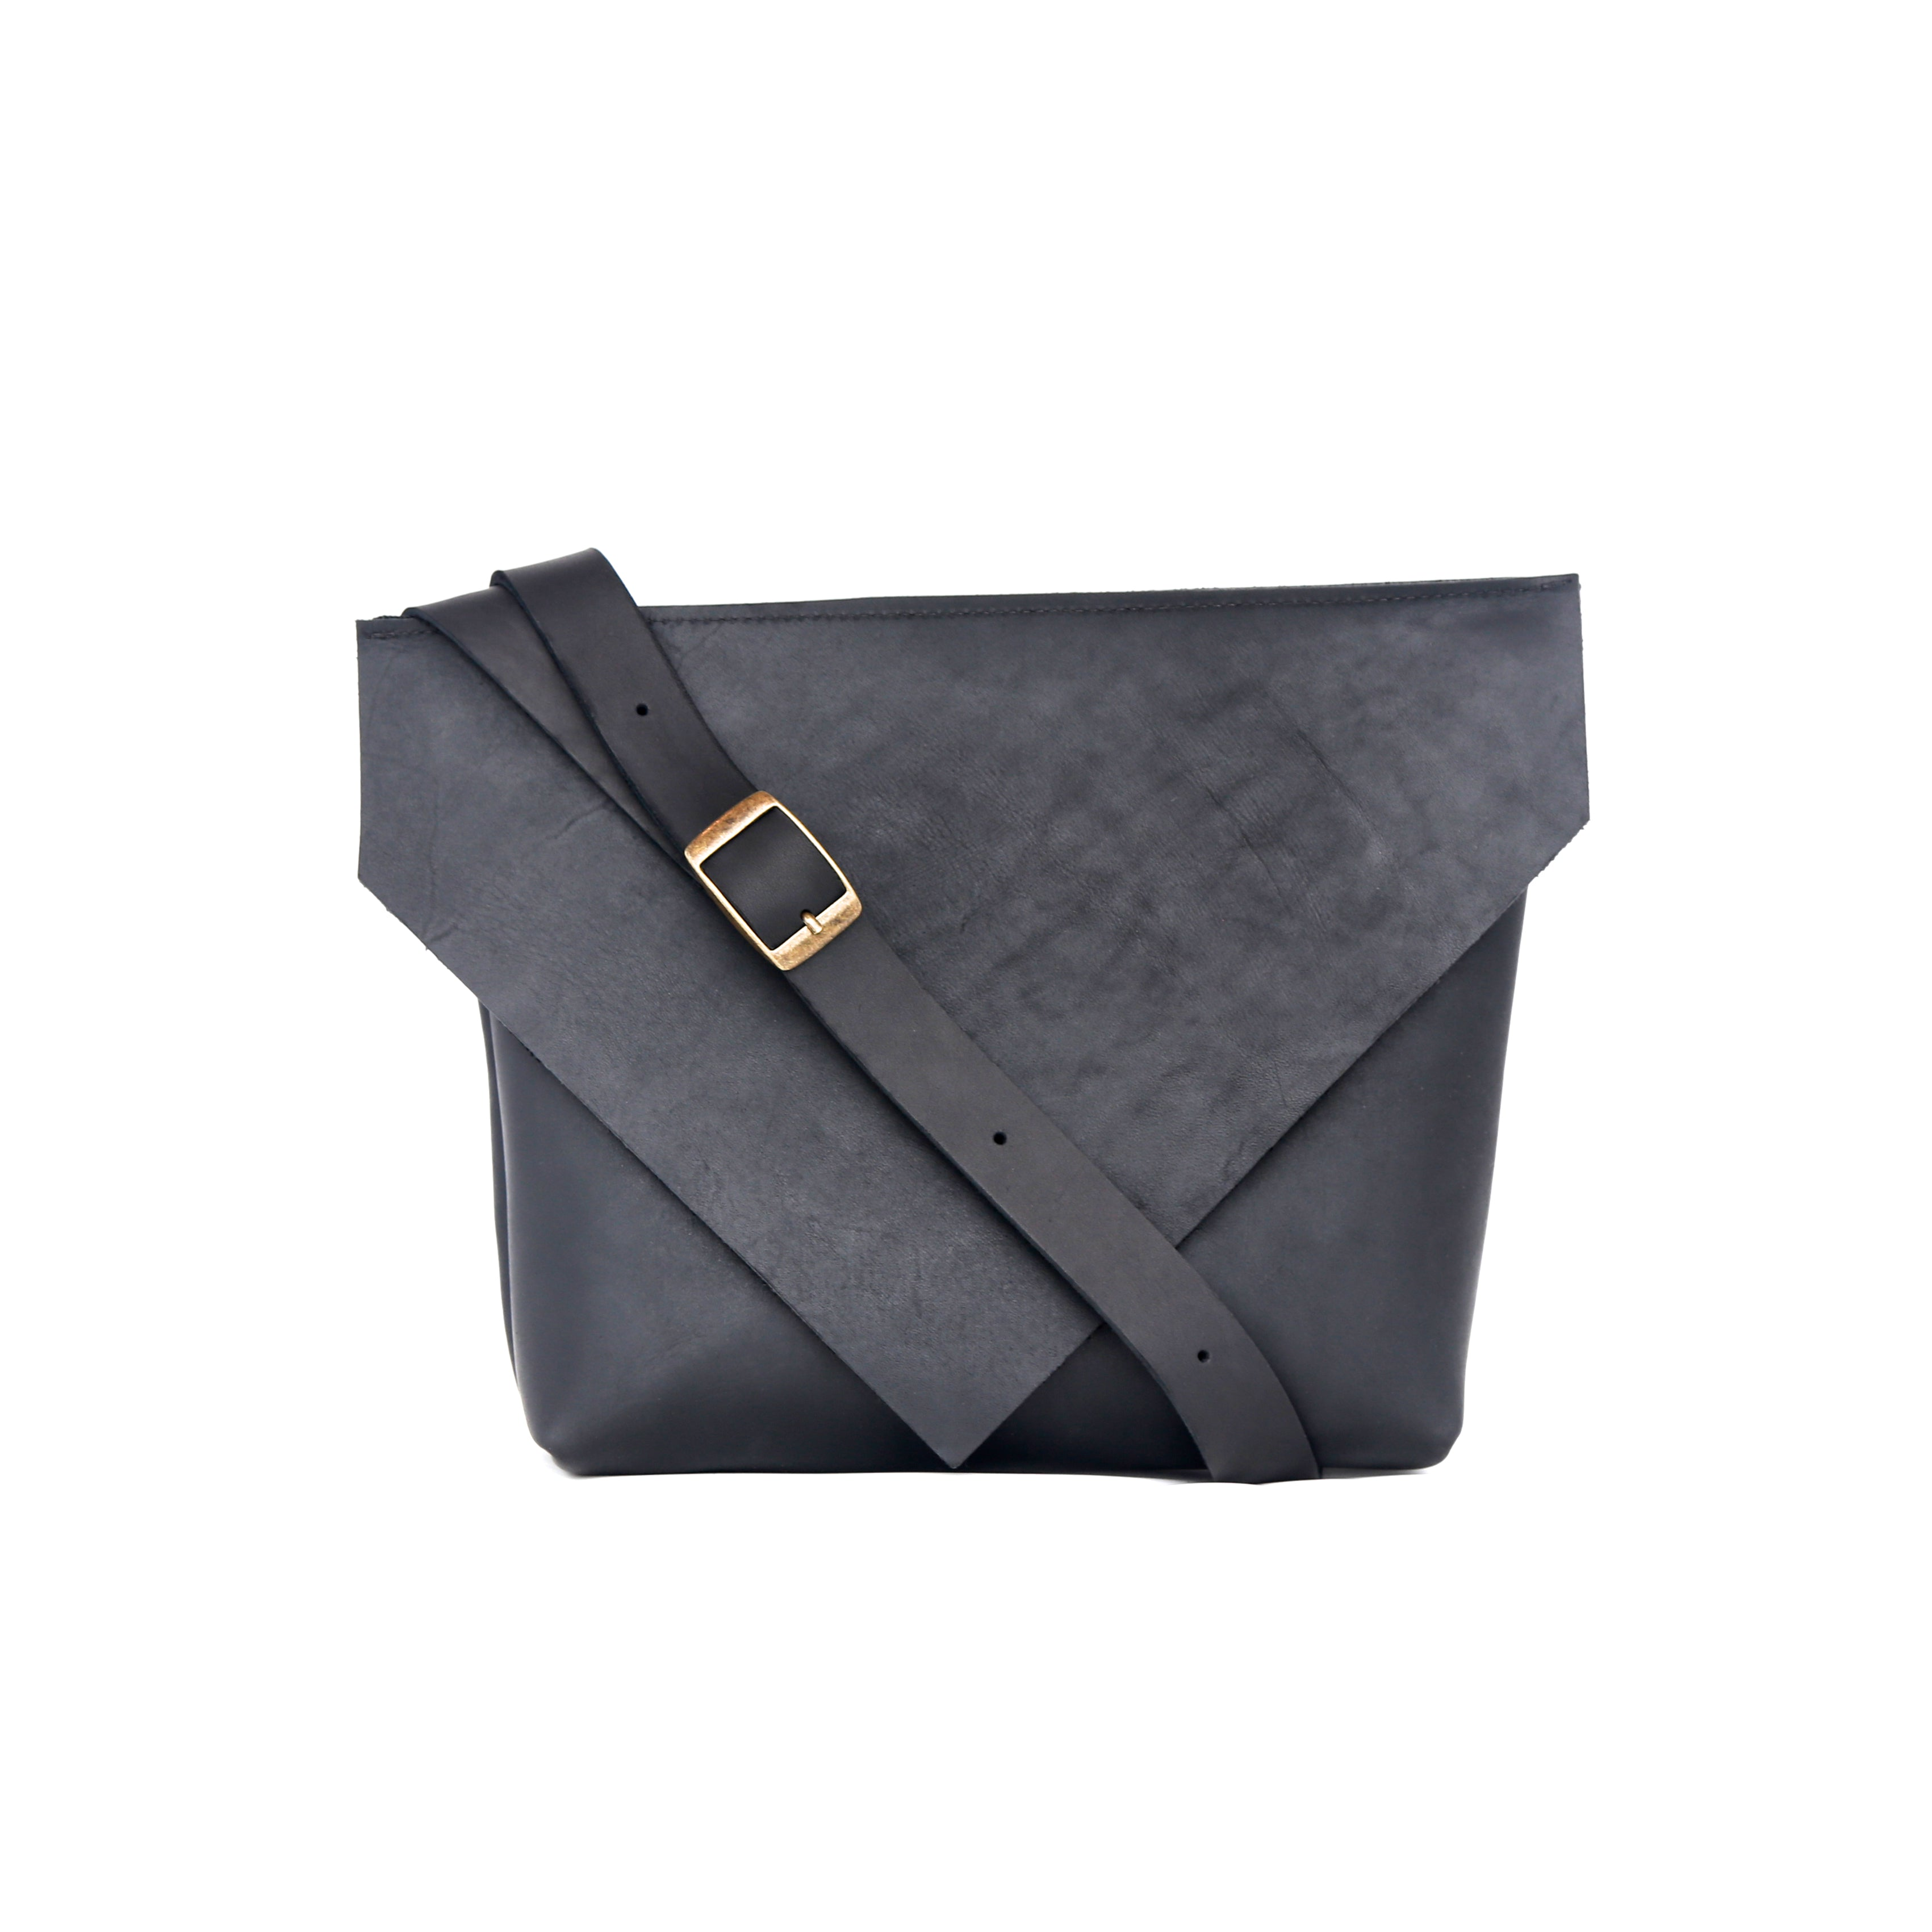 Envelope Bag in Matte Black Leather - handcrafted by Market Canvas Leather in Tofino, BC, Canada